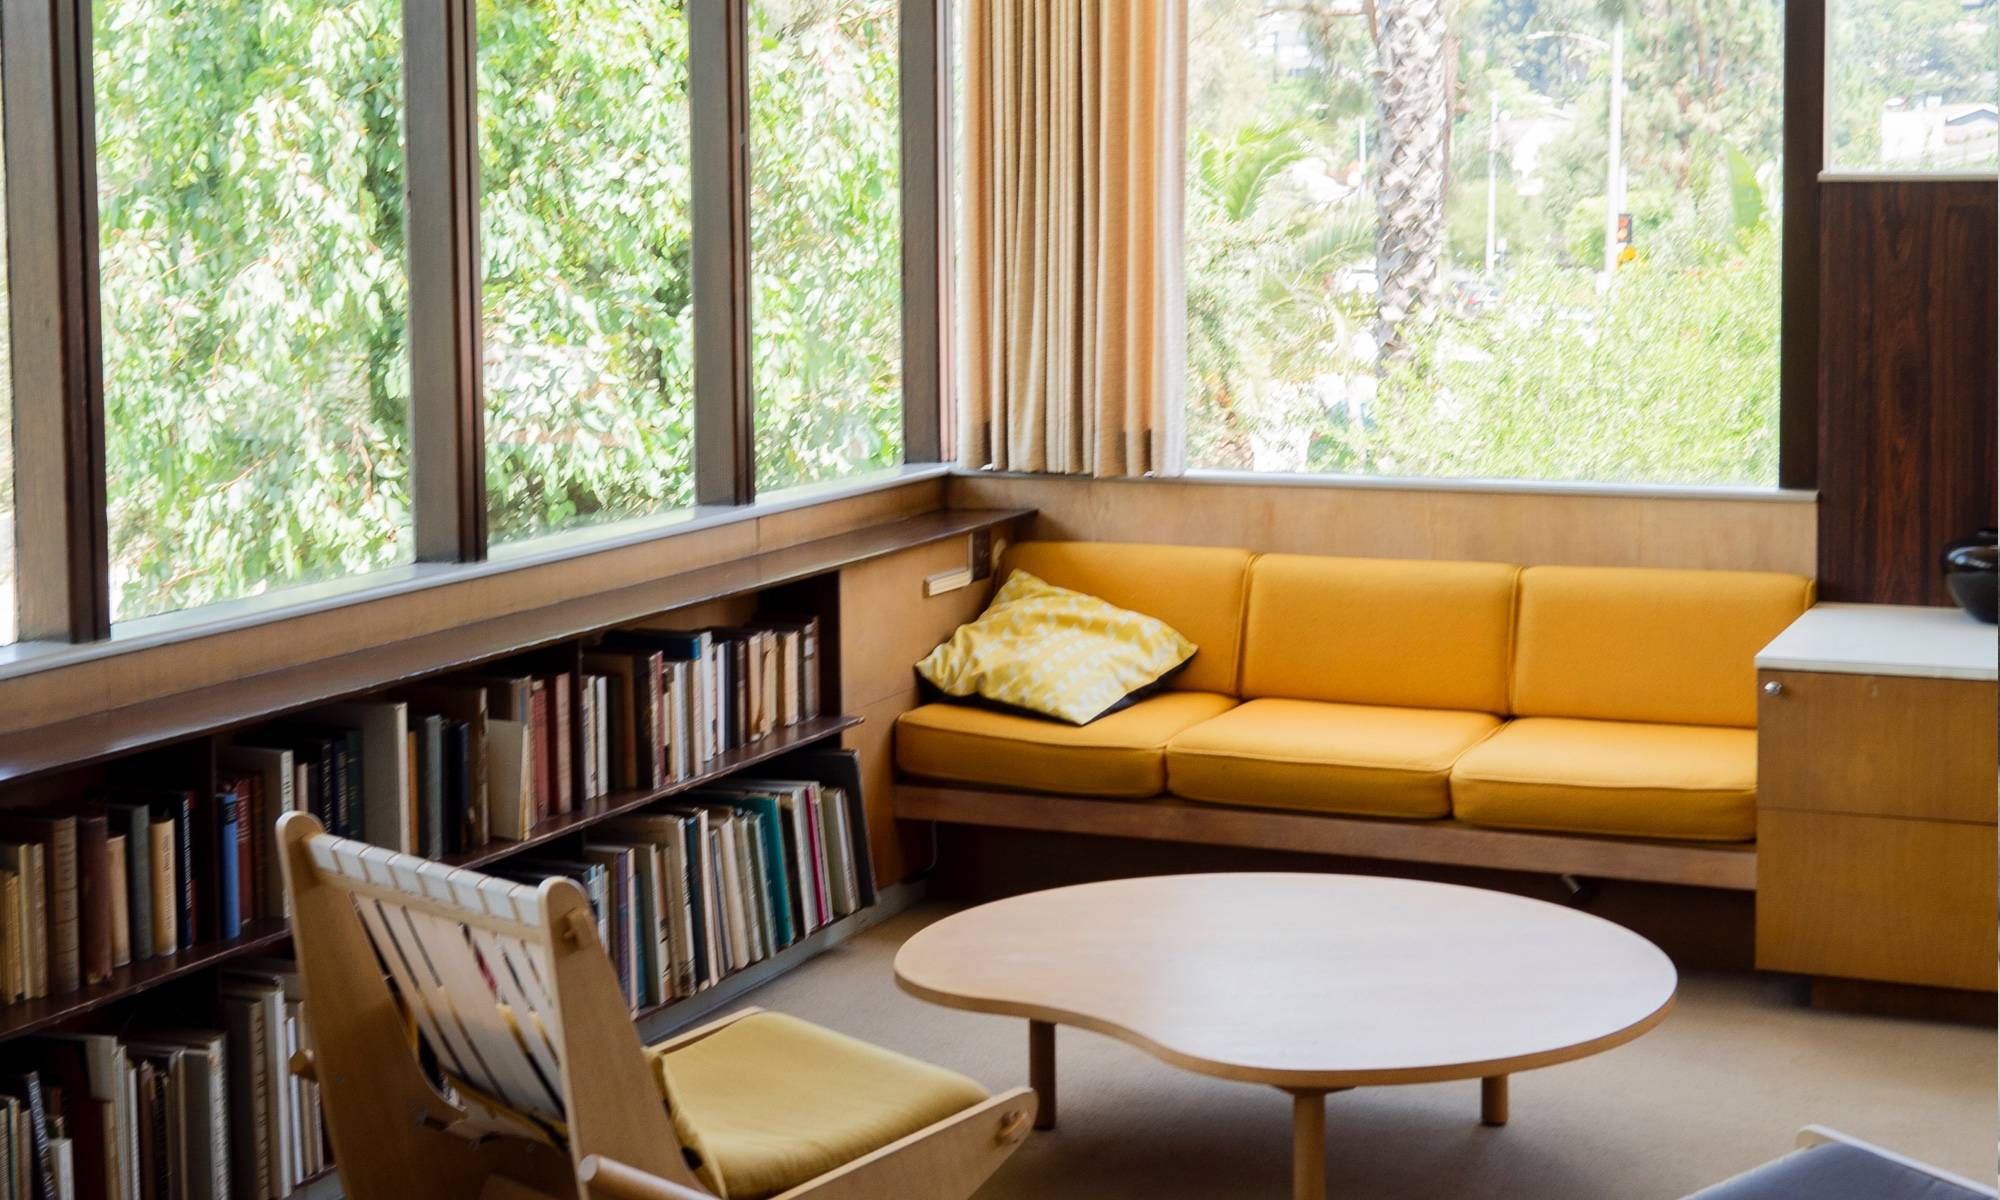 Richard Neutra Sitting Room